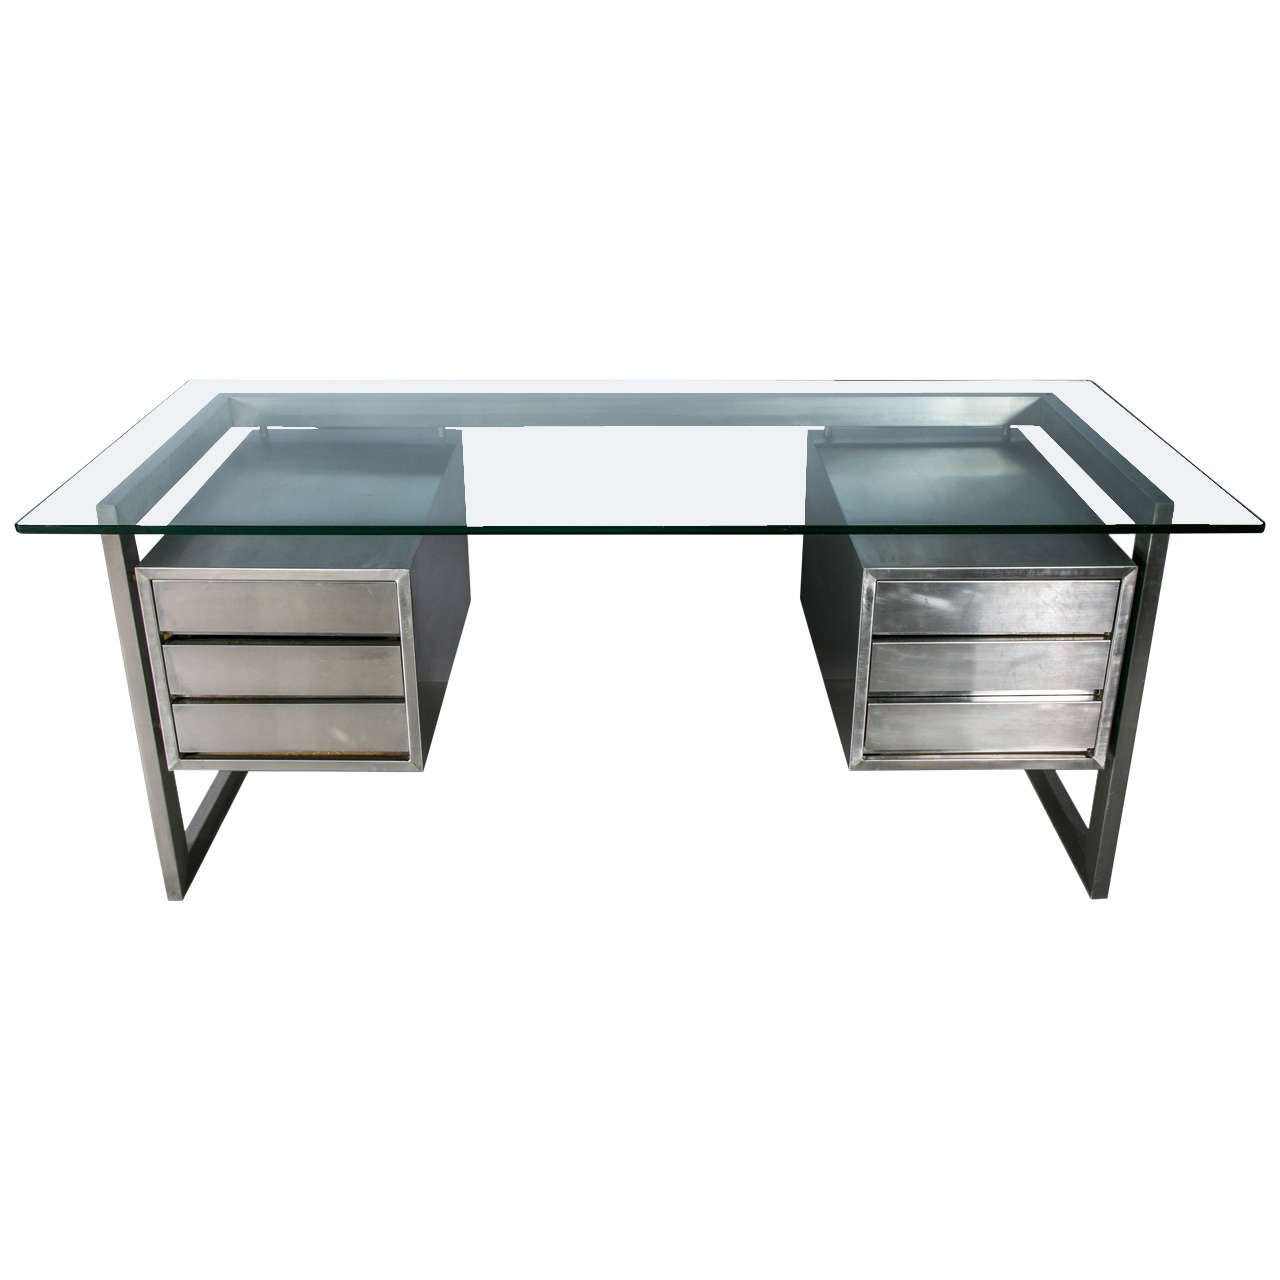 french stainless steel desk at stdibs -  french stainless steel desk